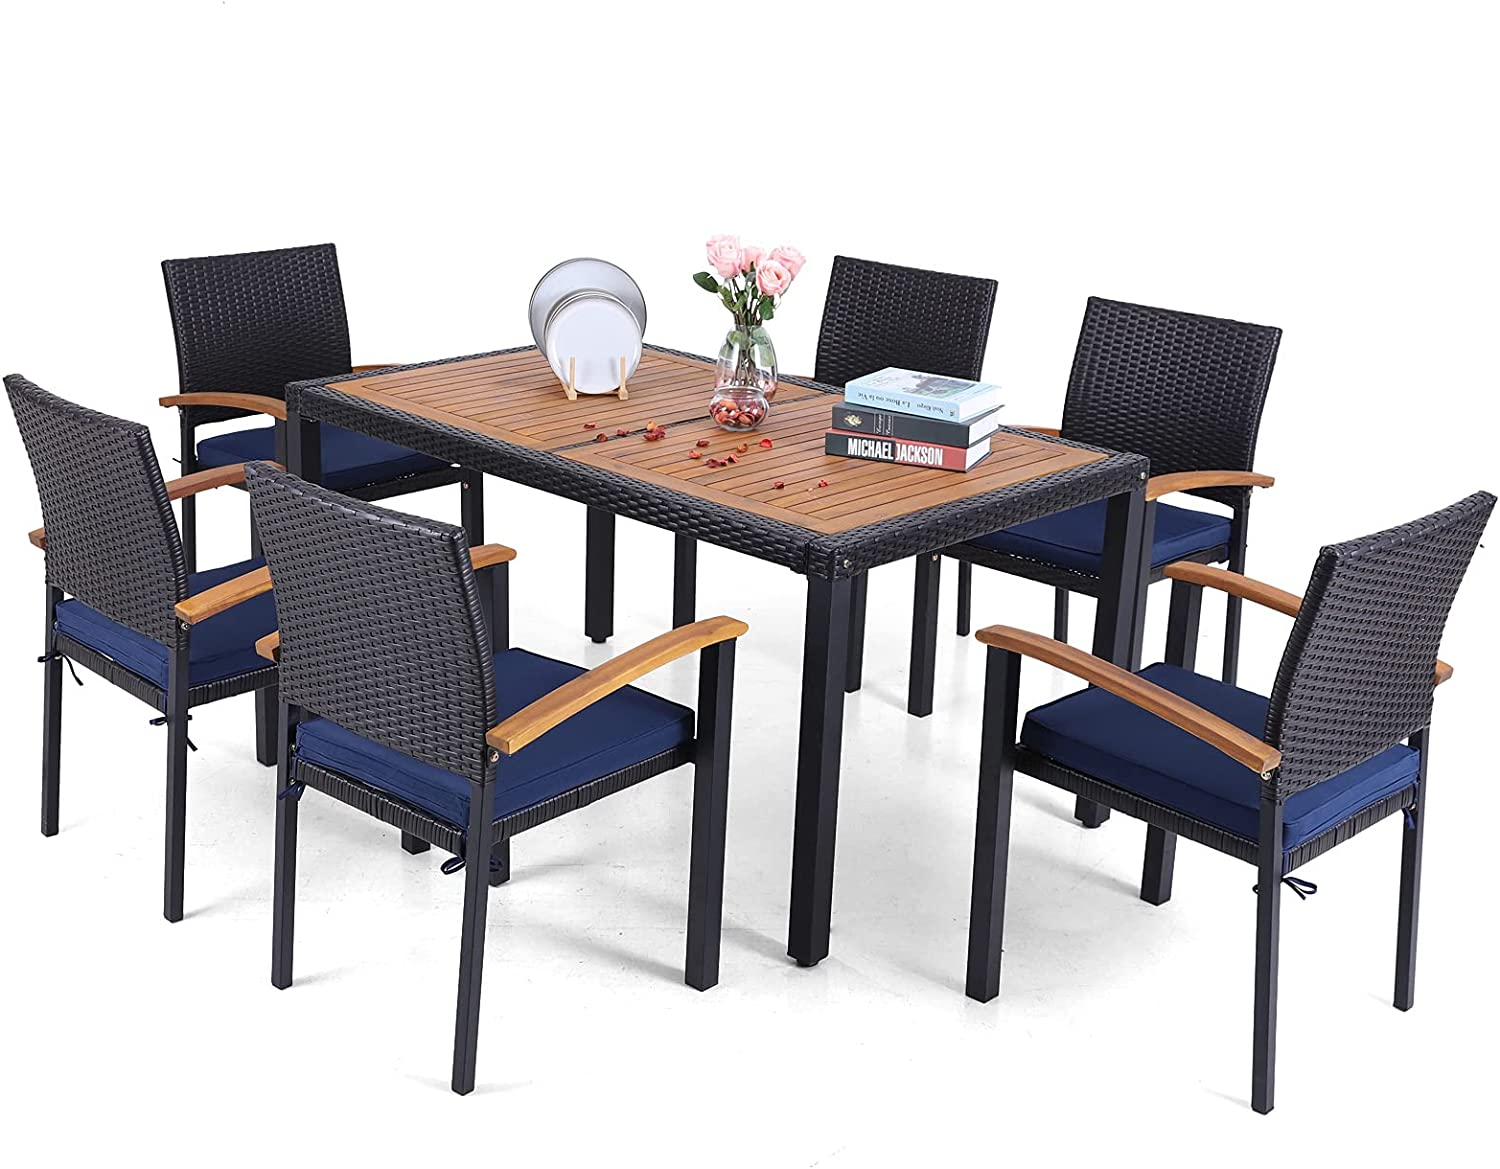 Sophia & William Patio 7 Pieces Dining Set with 6 PE Rattan Chairs & 1 Rectangle Acacia Wood Table, Modern Outdoor Wicker Chairs and Table Furniture with Cushions for Porch Backyard Balcony Poolside